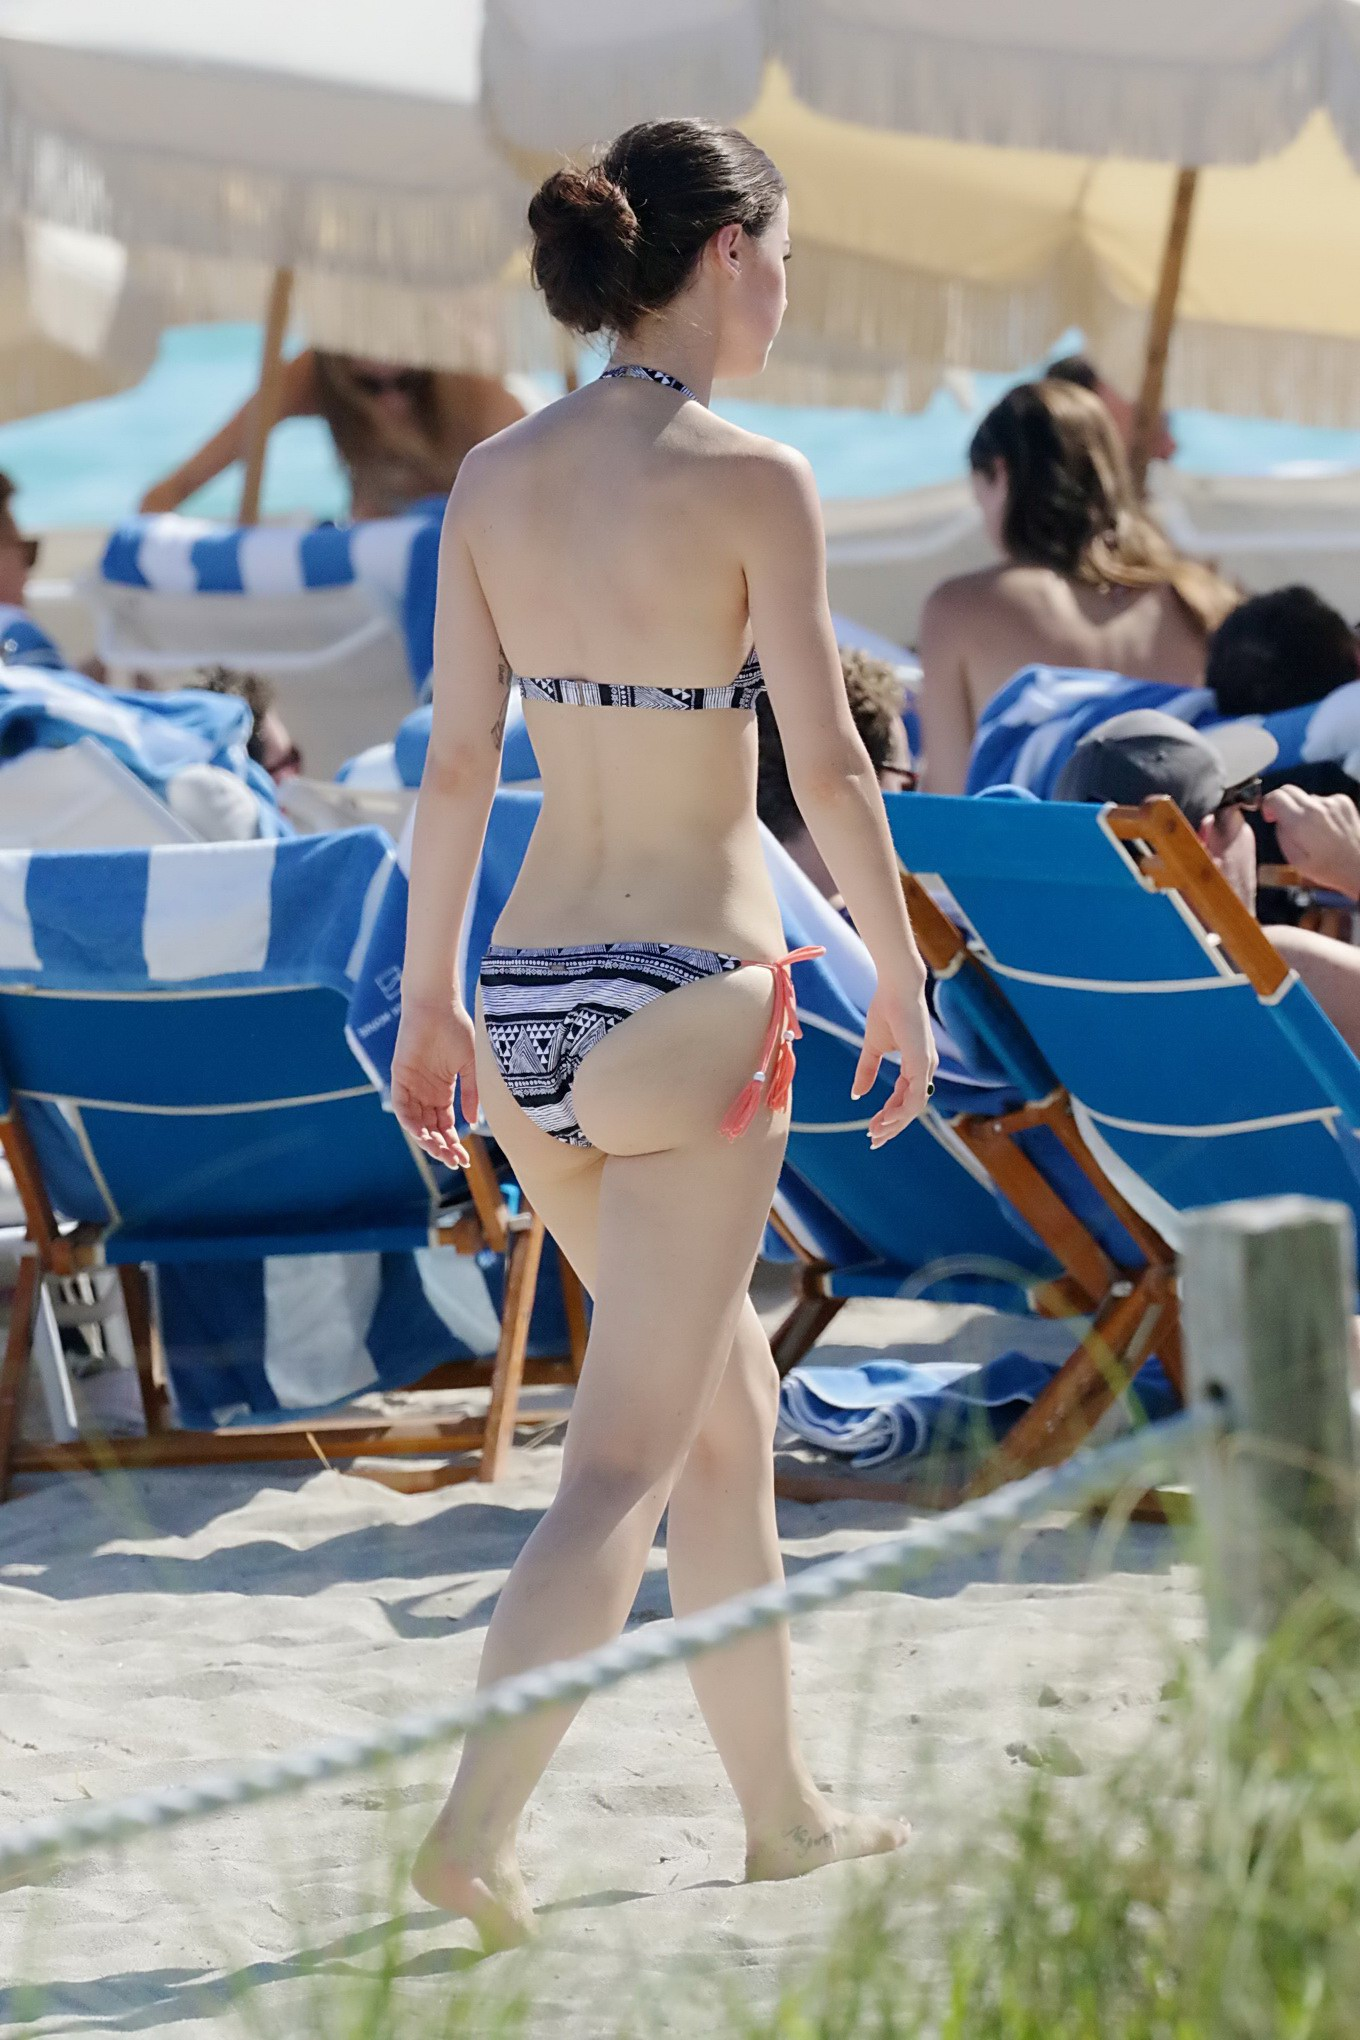 ... off her hot body in skimpy monochrome bikini at the beach in Miami: www.celeb6free.com/pics/celeb4063/topcelebs.html